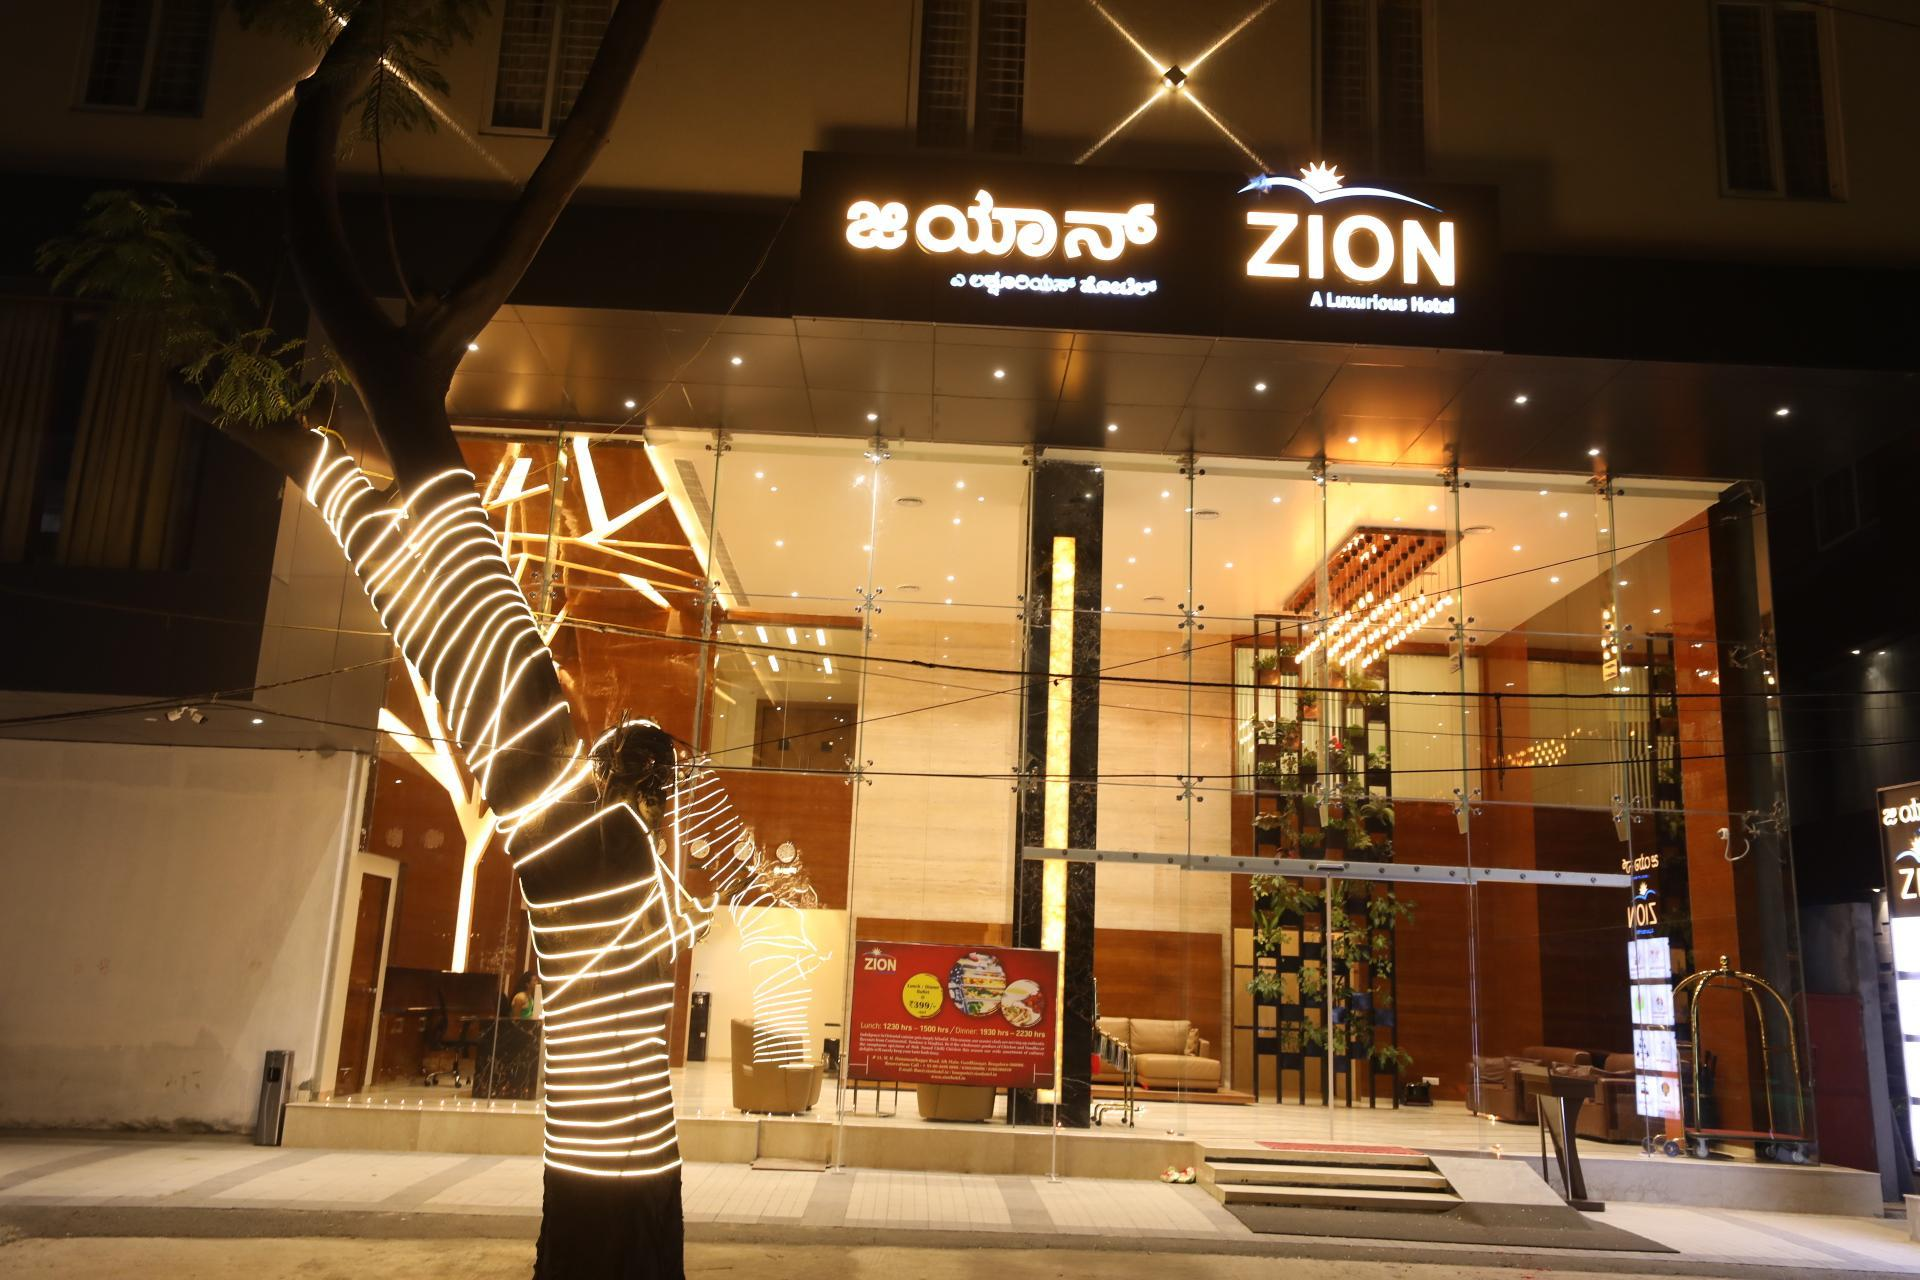 ZION A Luxurious Hotel